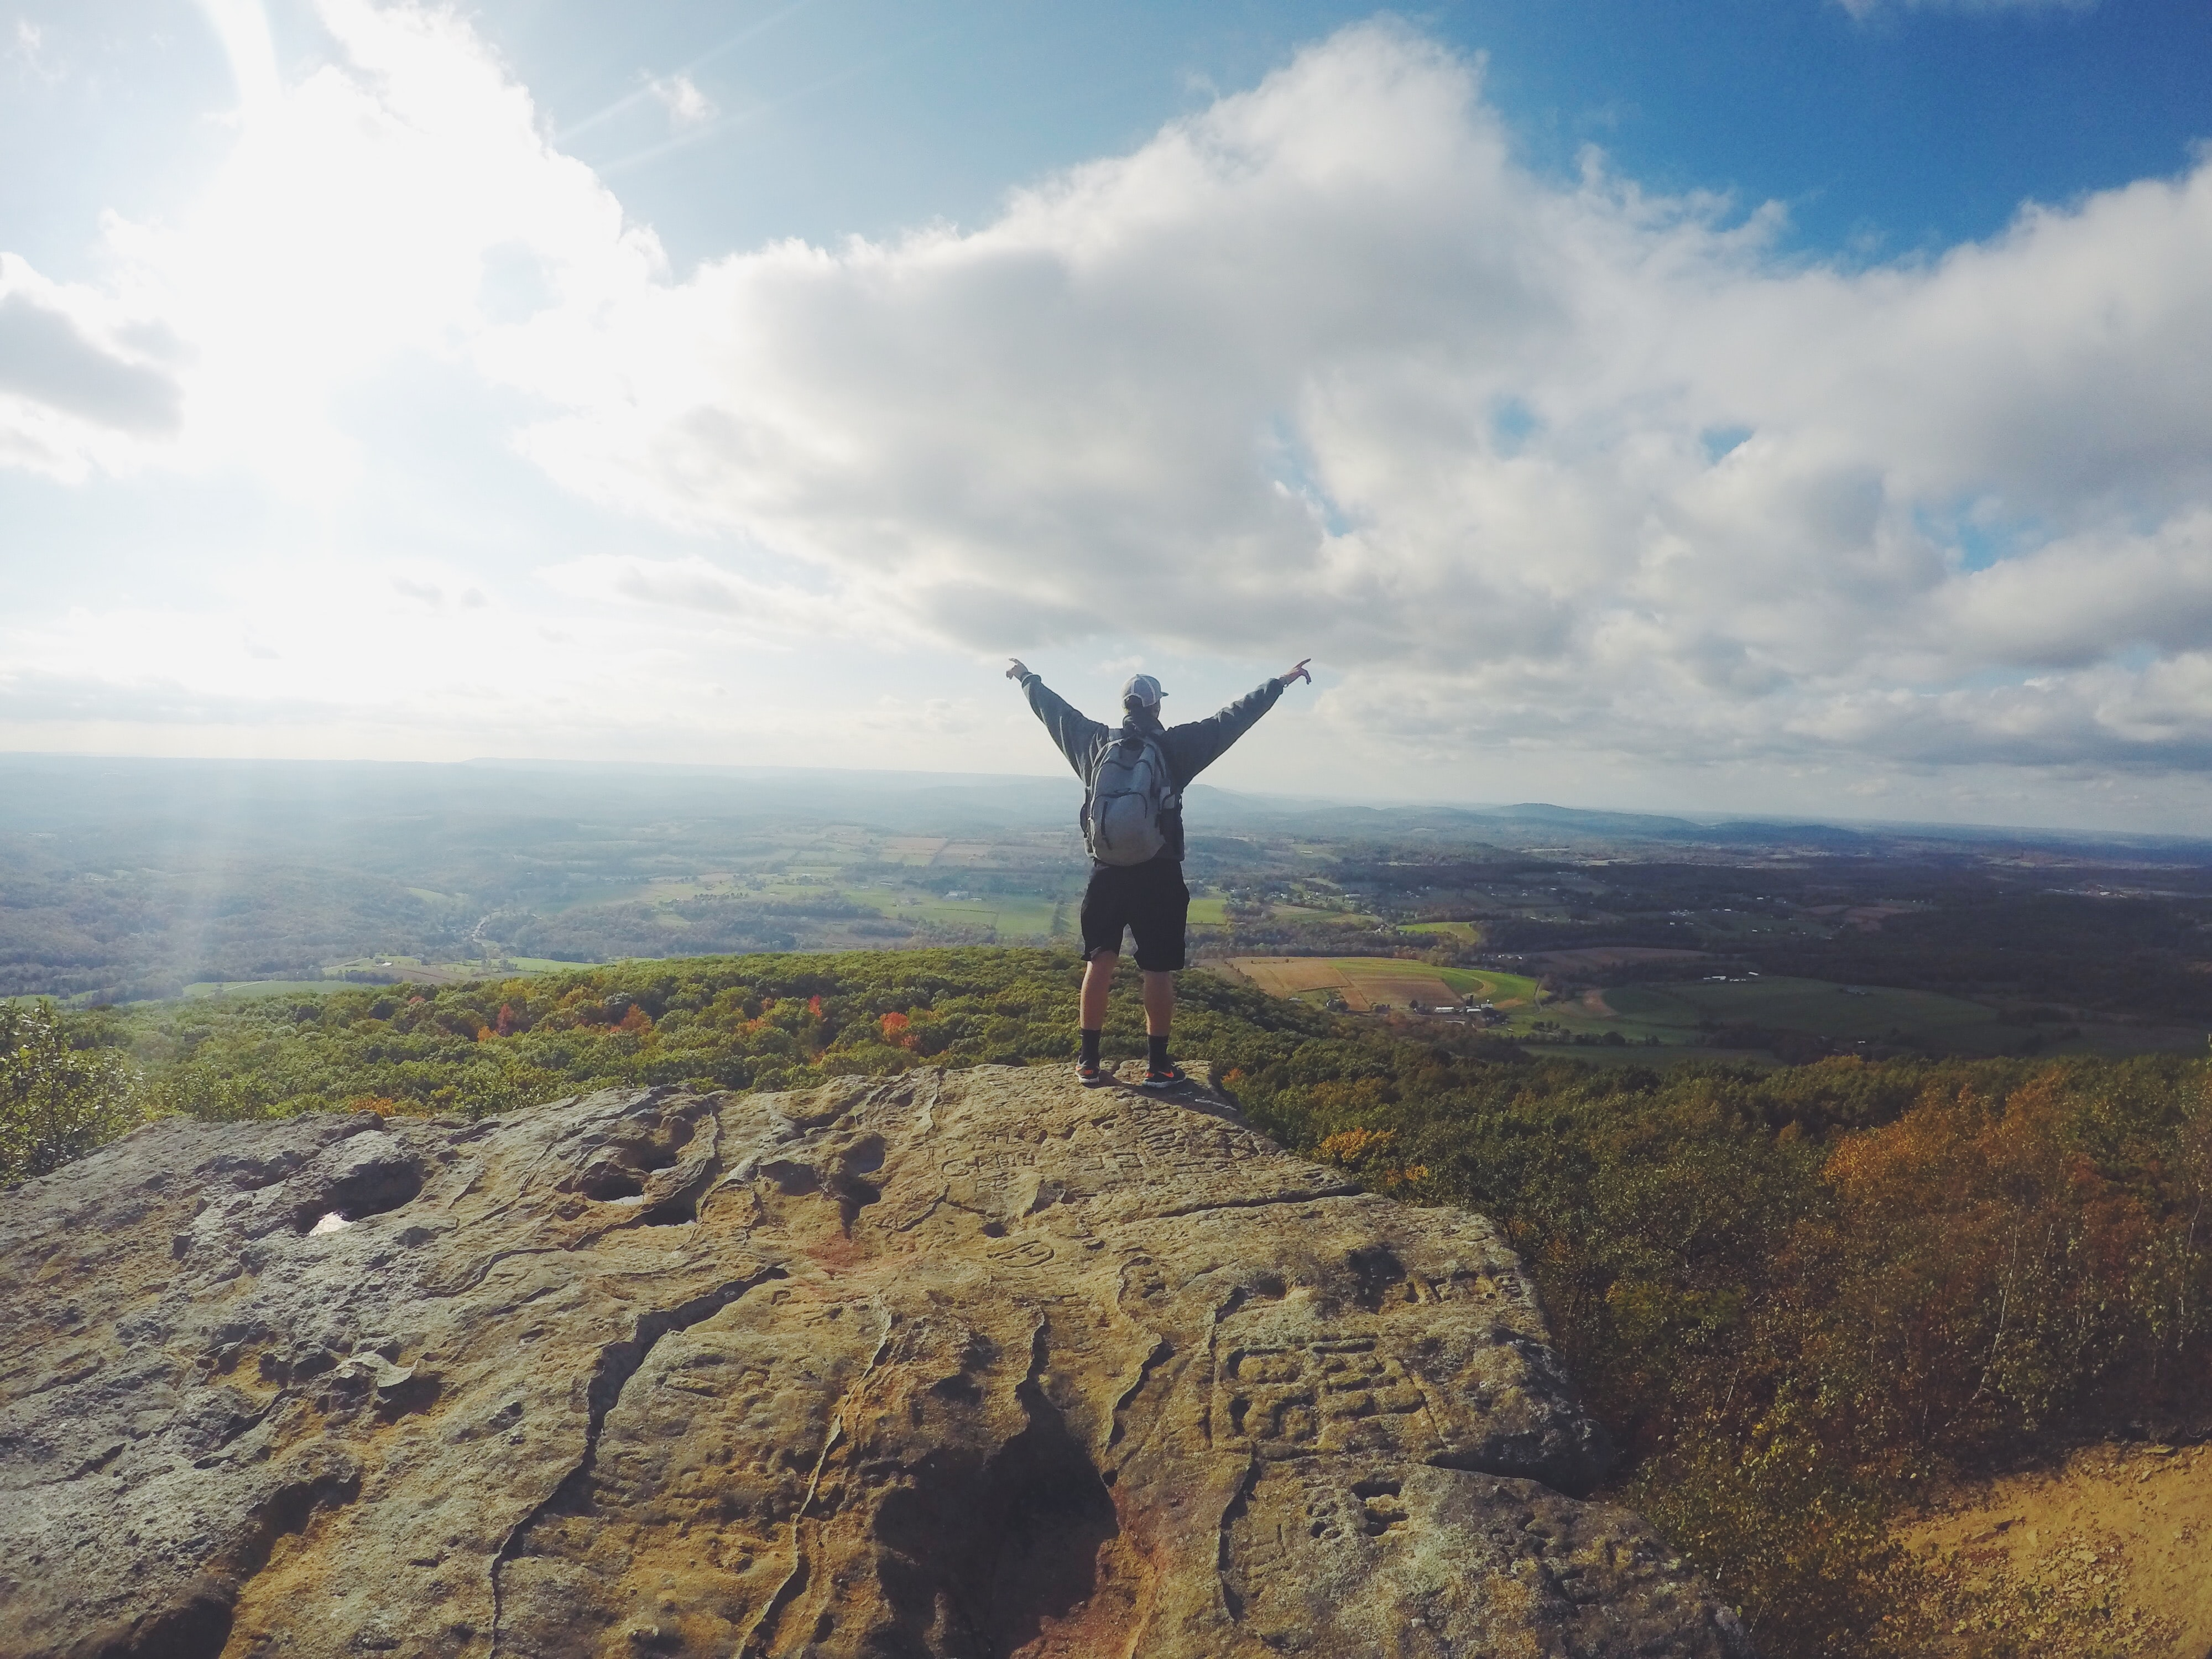 A man with a backpack standing with his hands outstretched on a rocky ledge overlooking green countryside